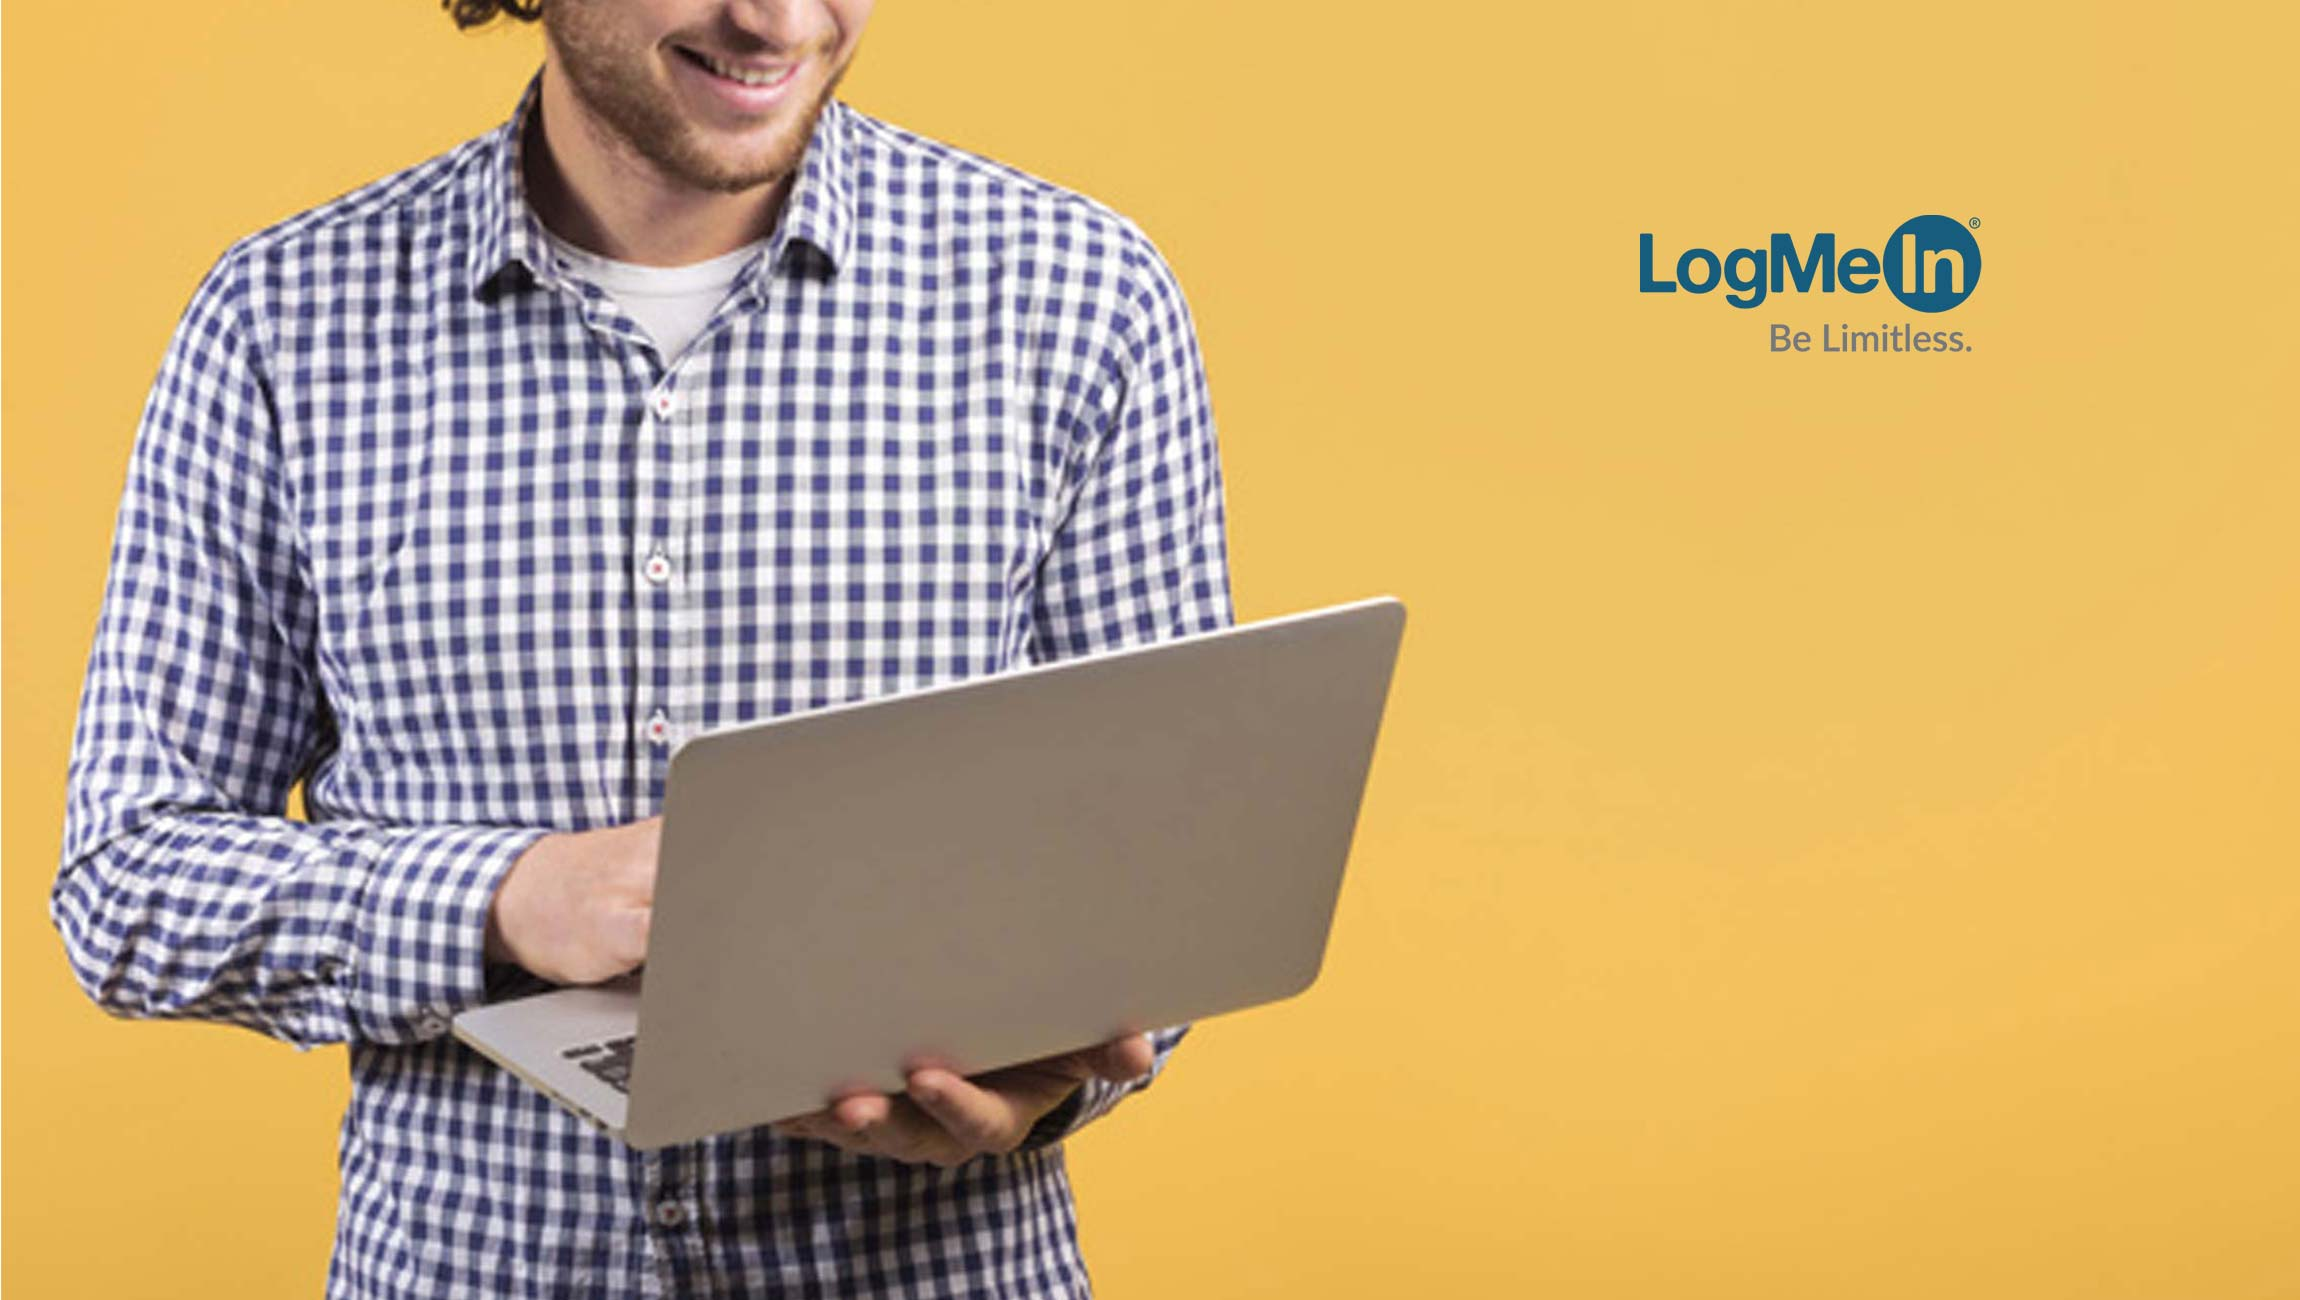 LogMeIn Names Jamie Domenici as New Chief Marketing Officer 1